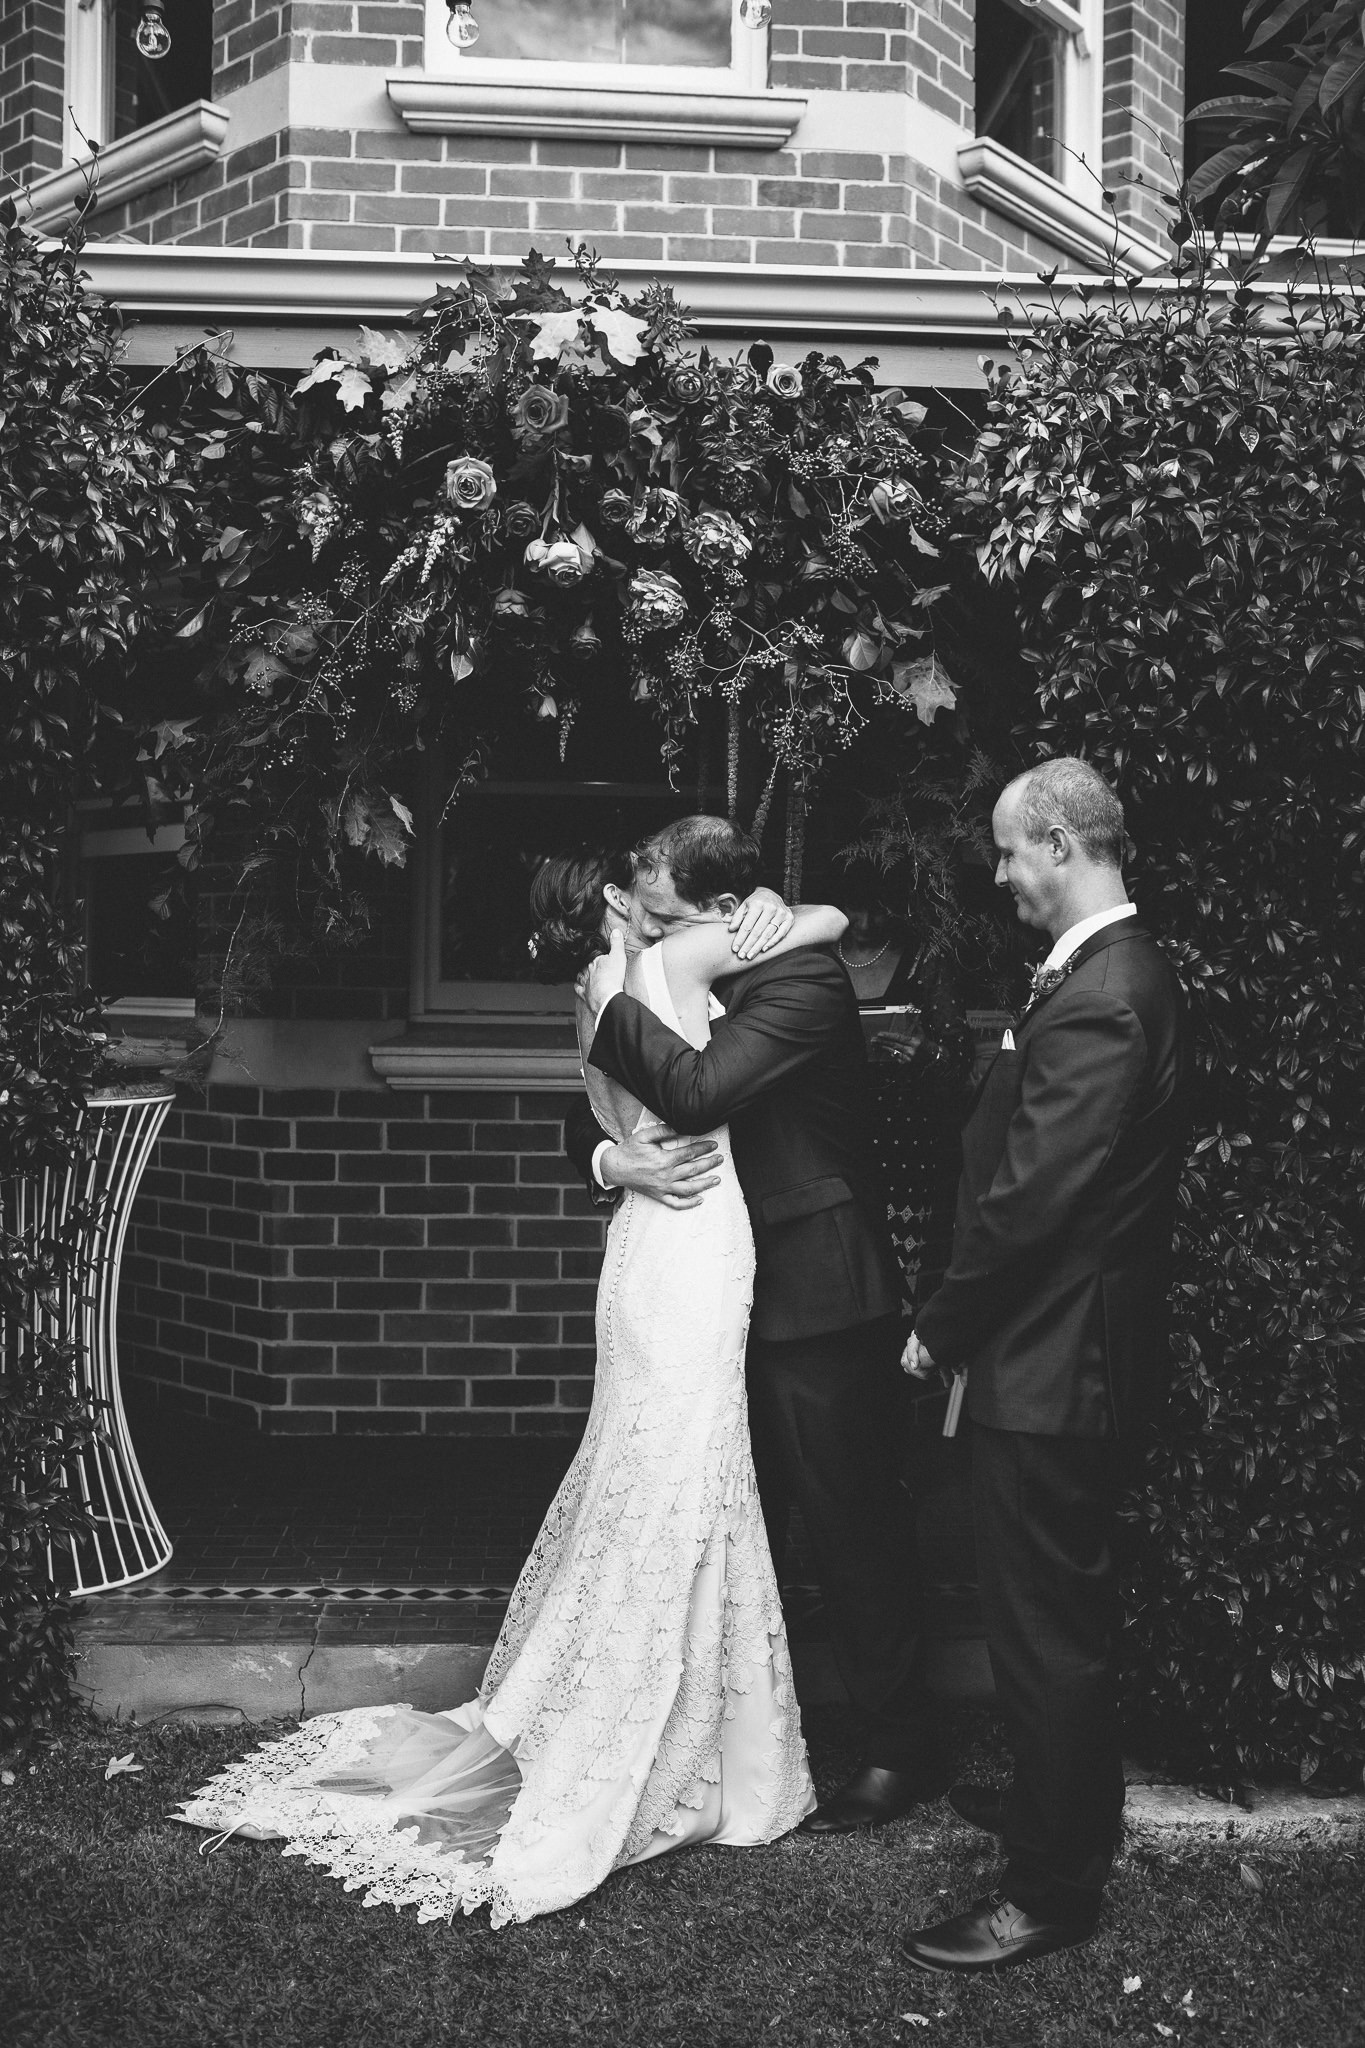 Bride: Kristen | Gown: Bespoke Couture Gown | Photographer: We Are All Stardust